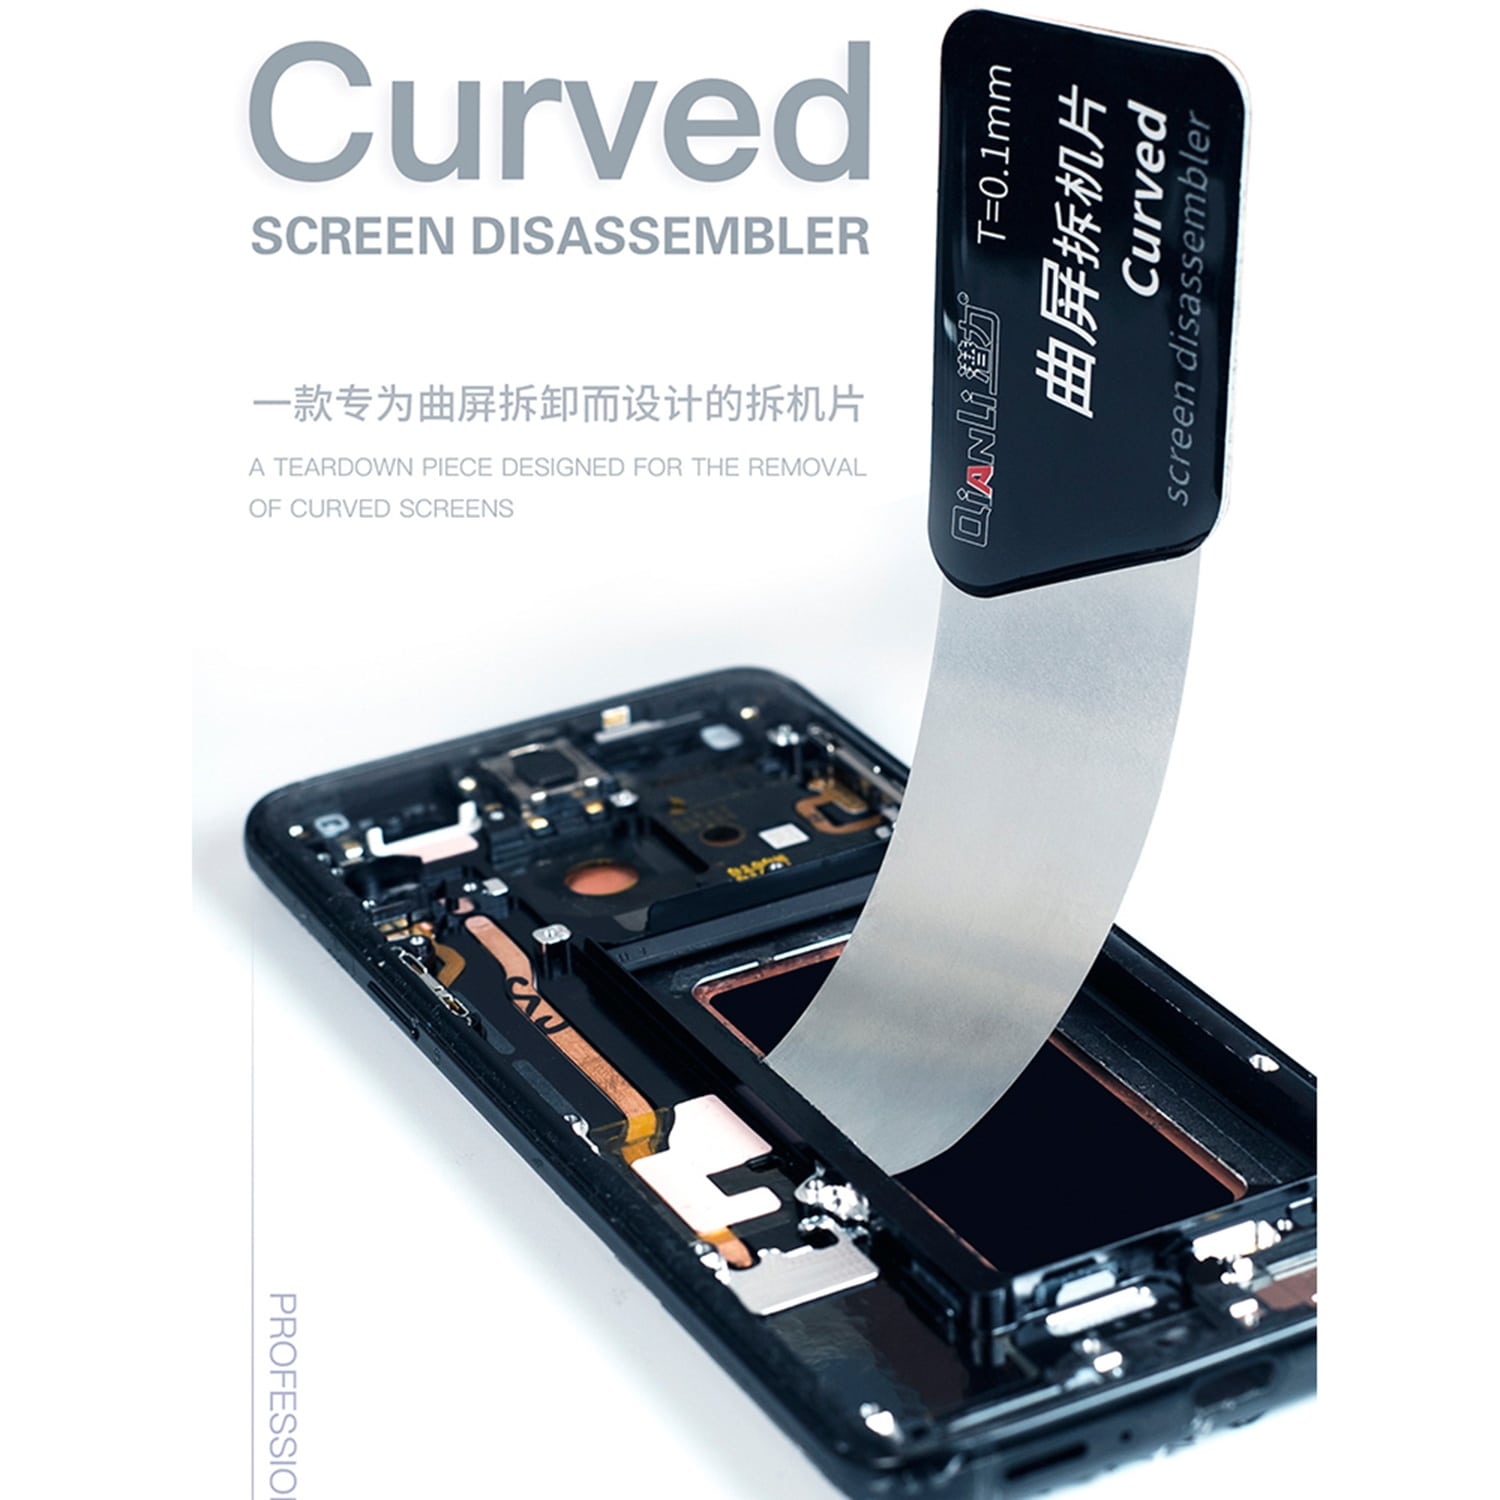 ToolPlus Curved Screen Disassembler